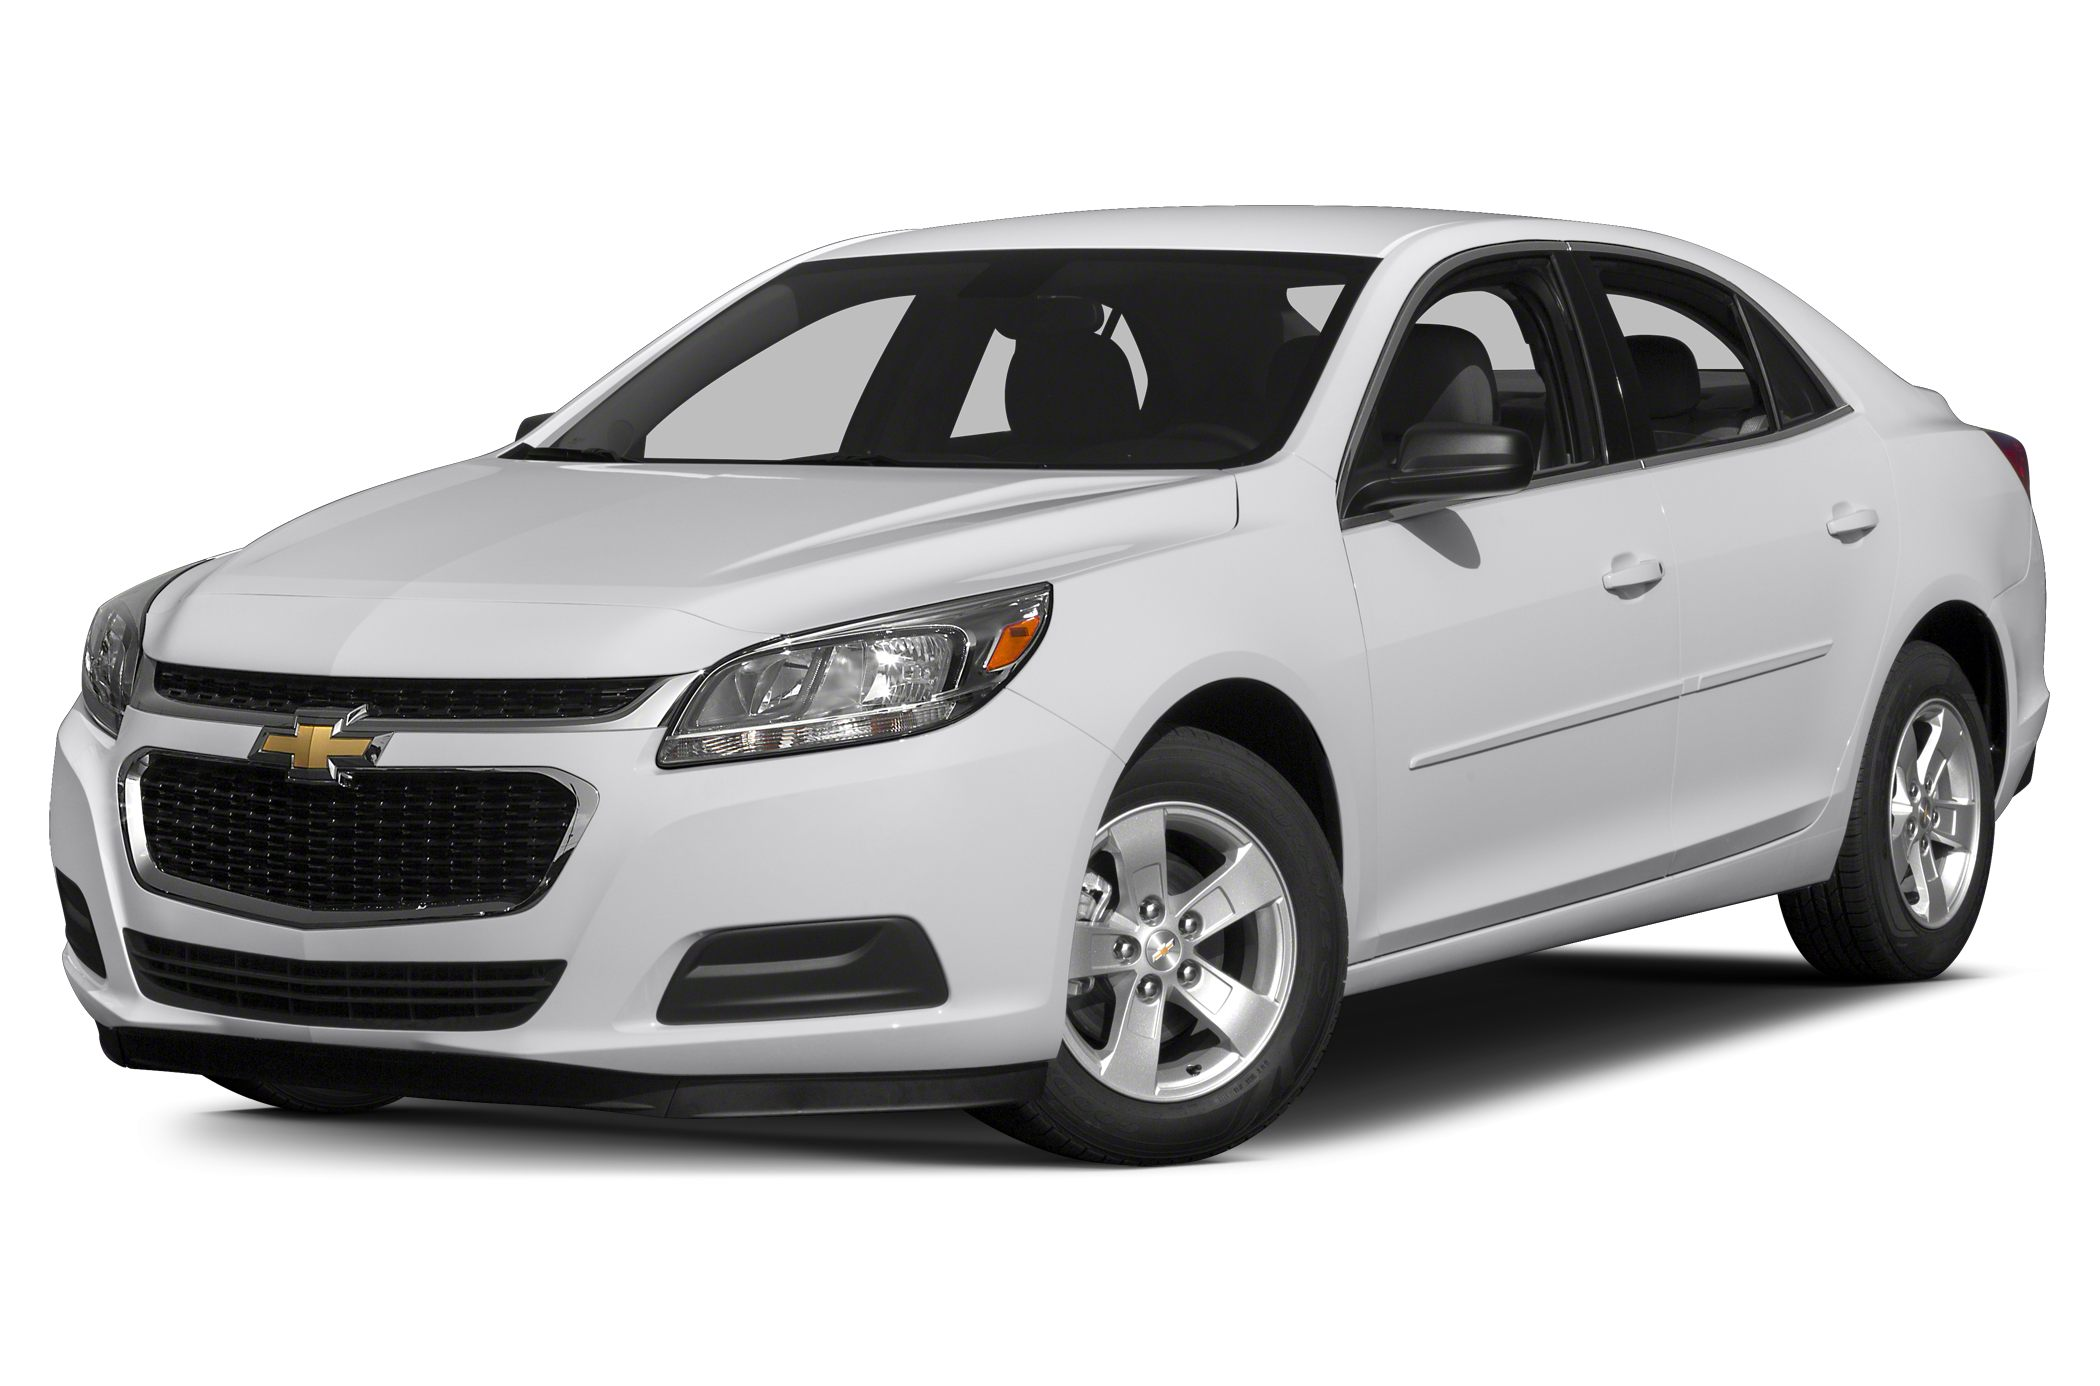 2015 Chevrolet Malibu 1LT Sedan for sale in Menomonie for $23,310 with 7 miles.